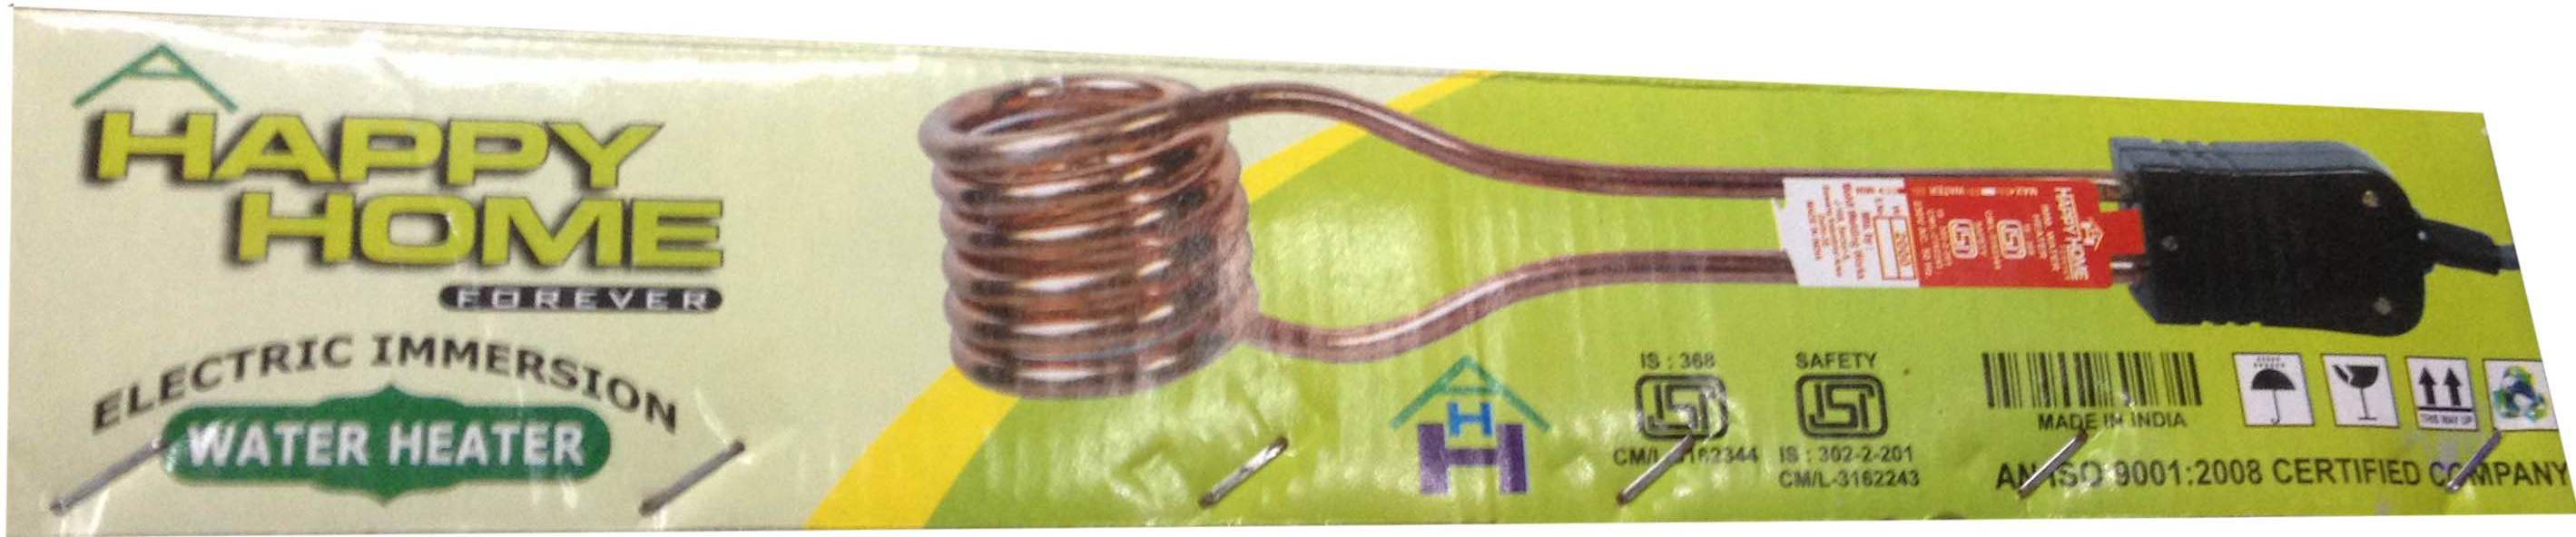 Happy Home ih-15 1500 W Immersion Heater Rod(Water)